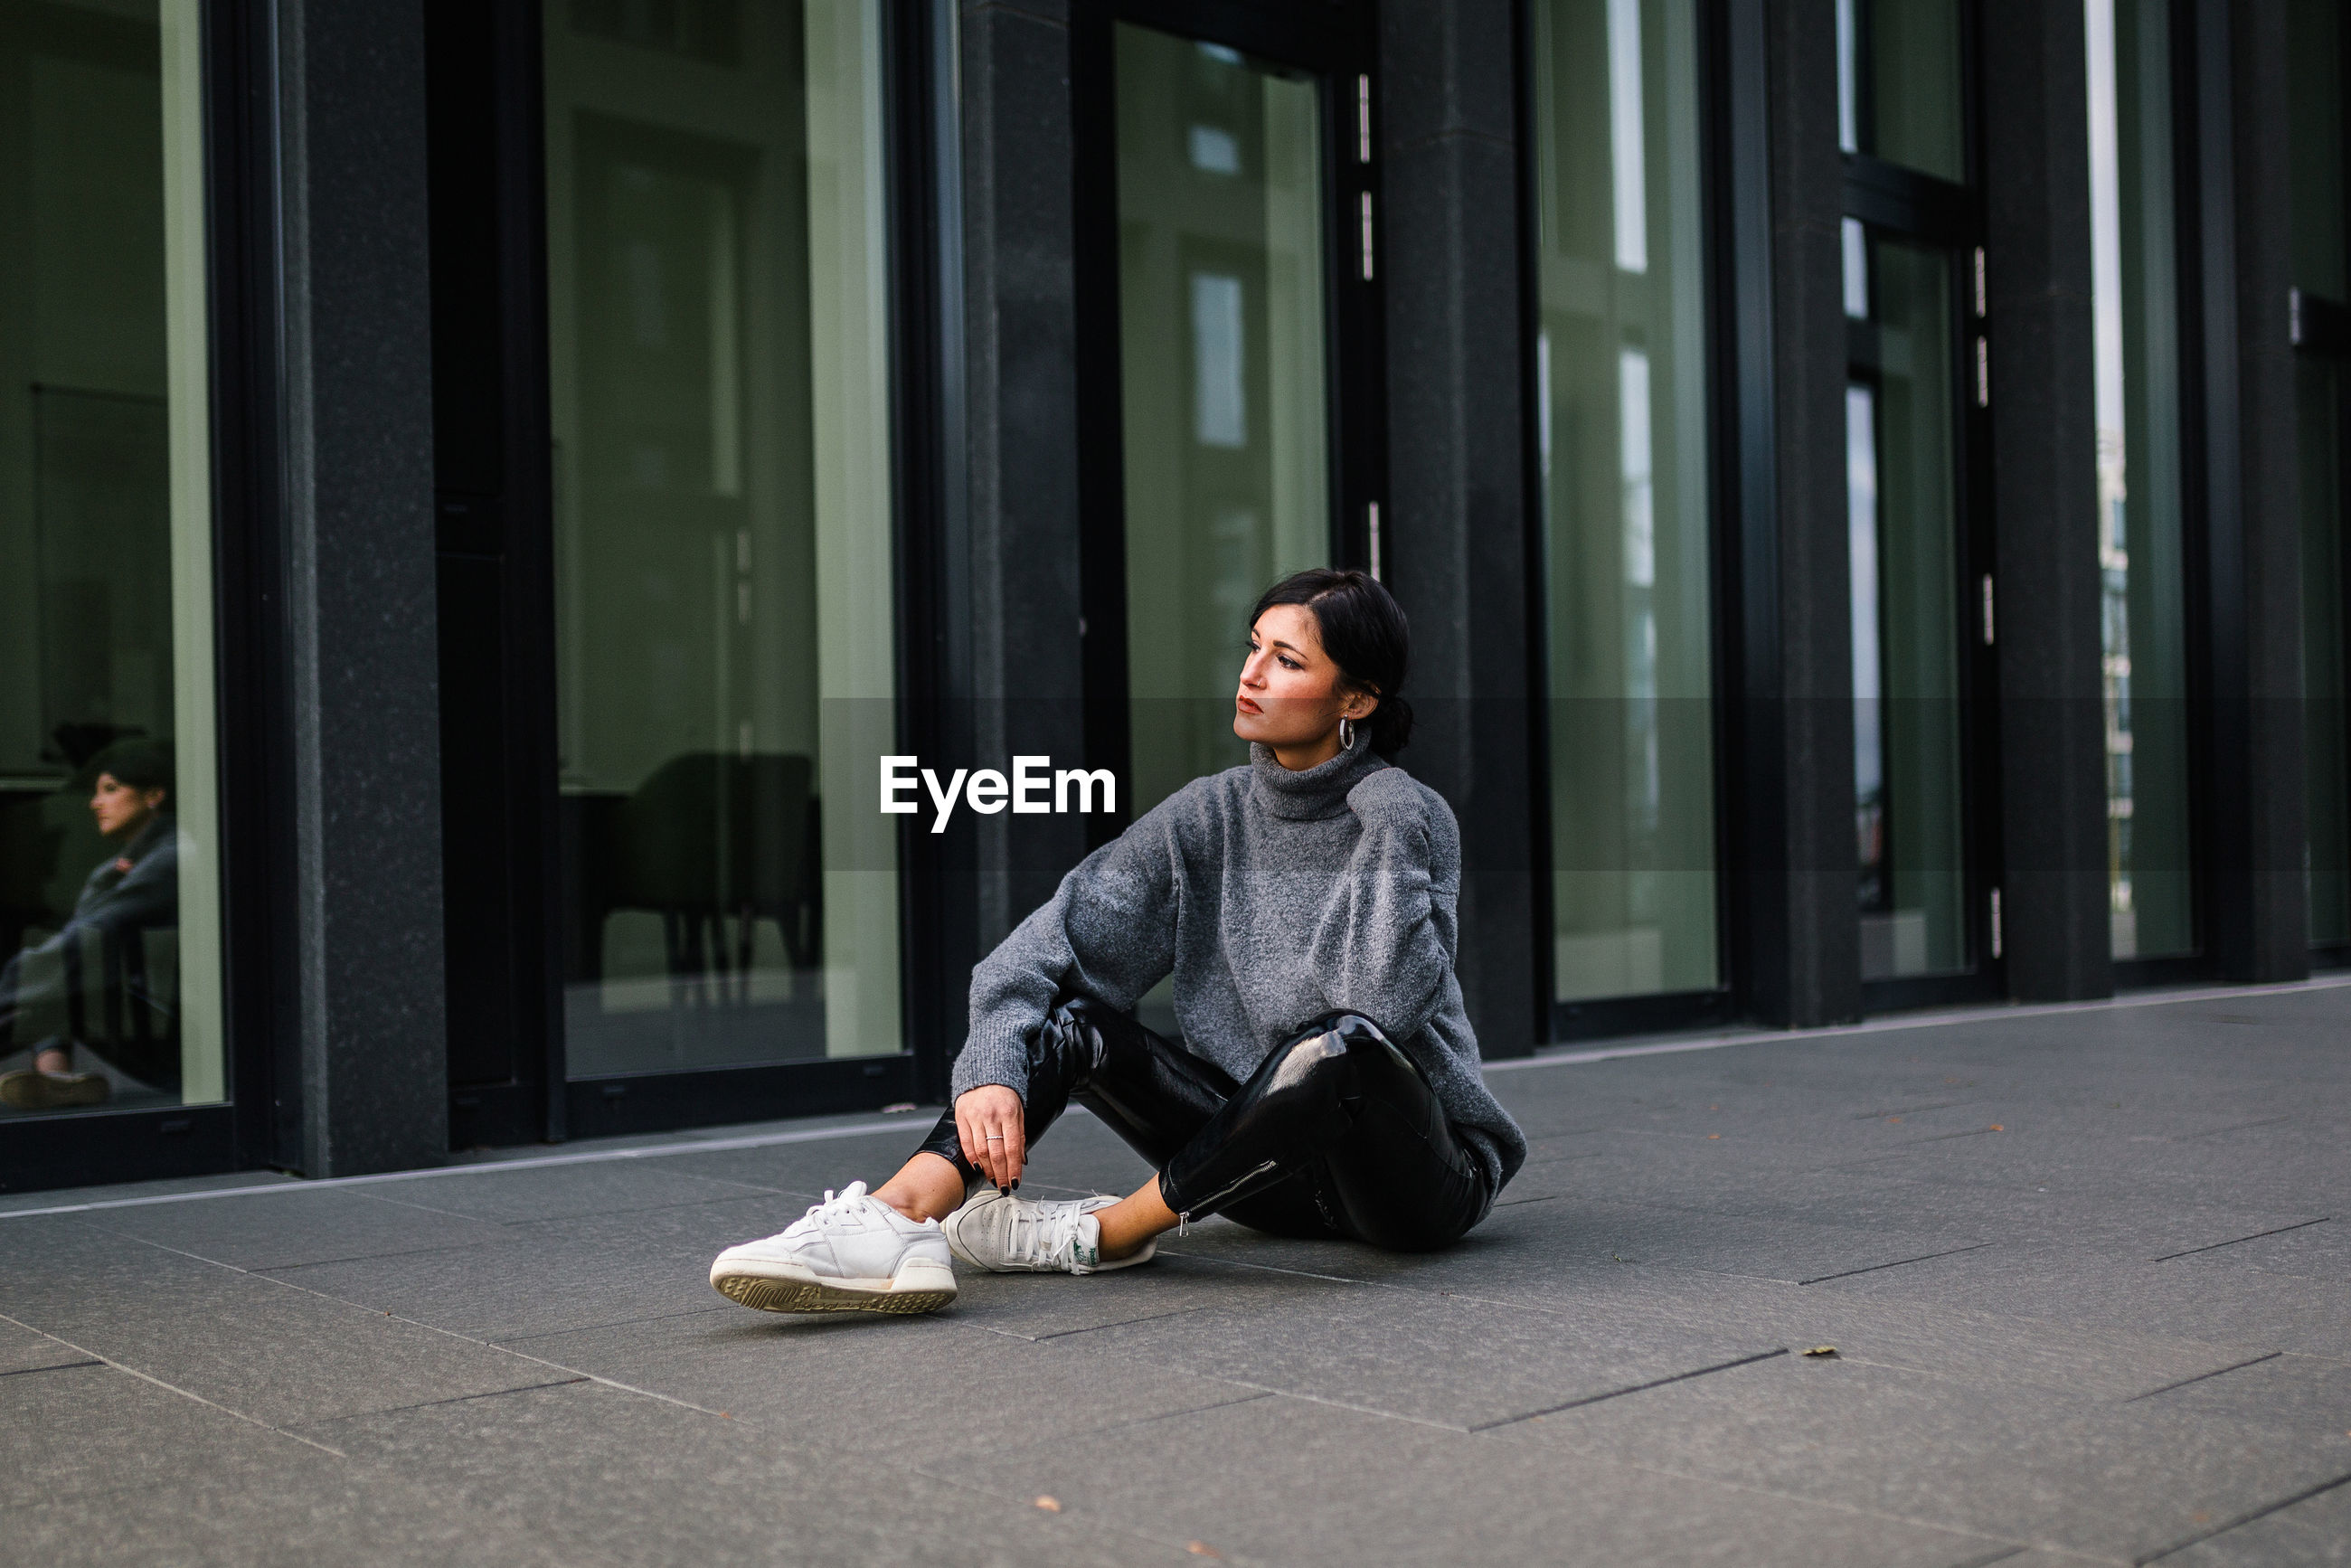 PORTRAIT OF WOMAN SITTING ON FOOTPATH AGAINST BUILDING